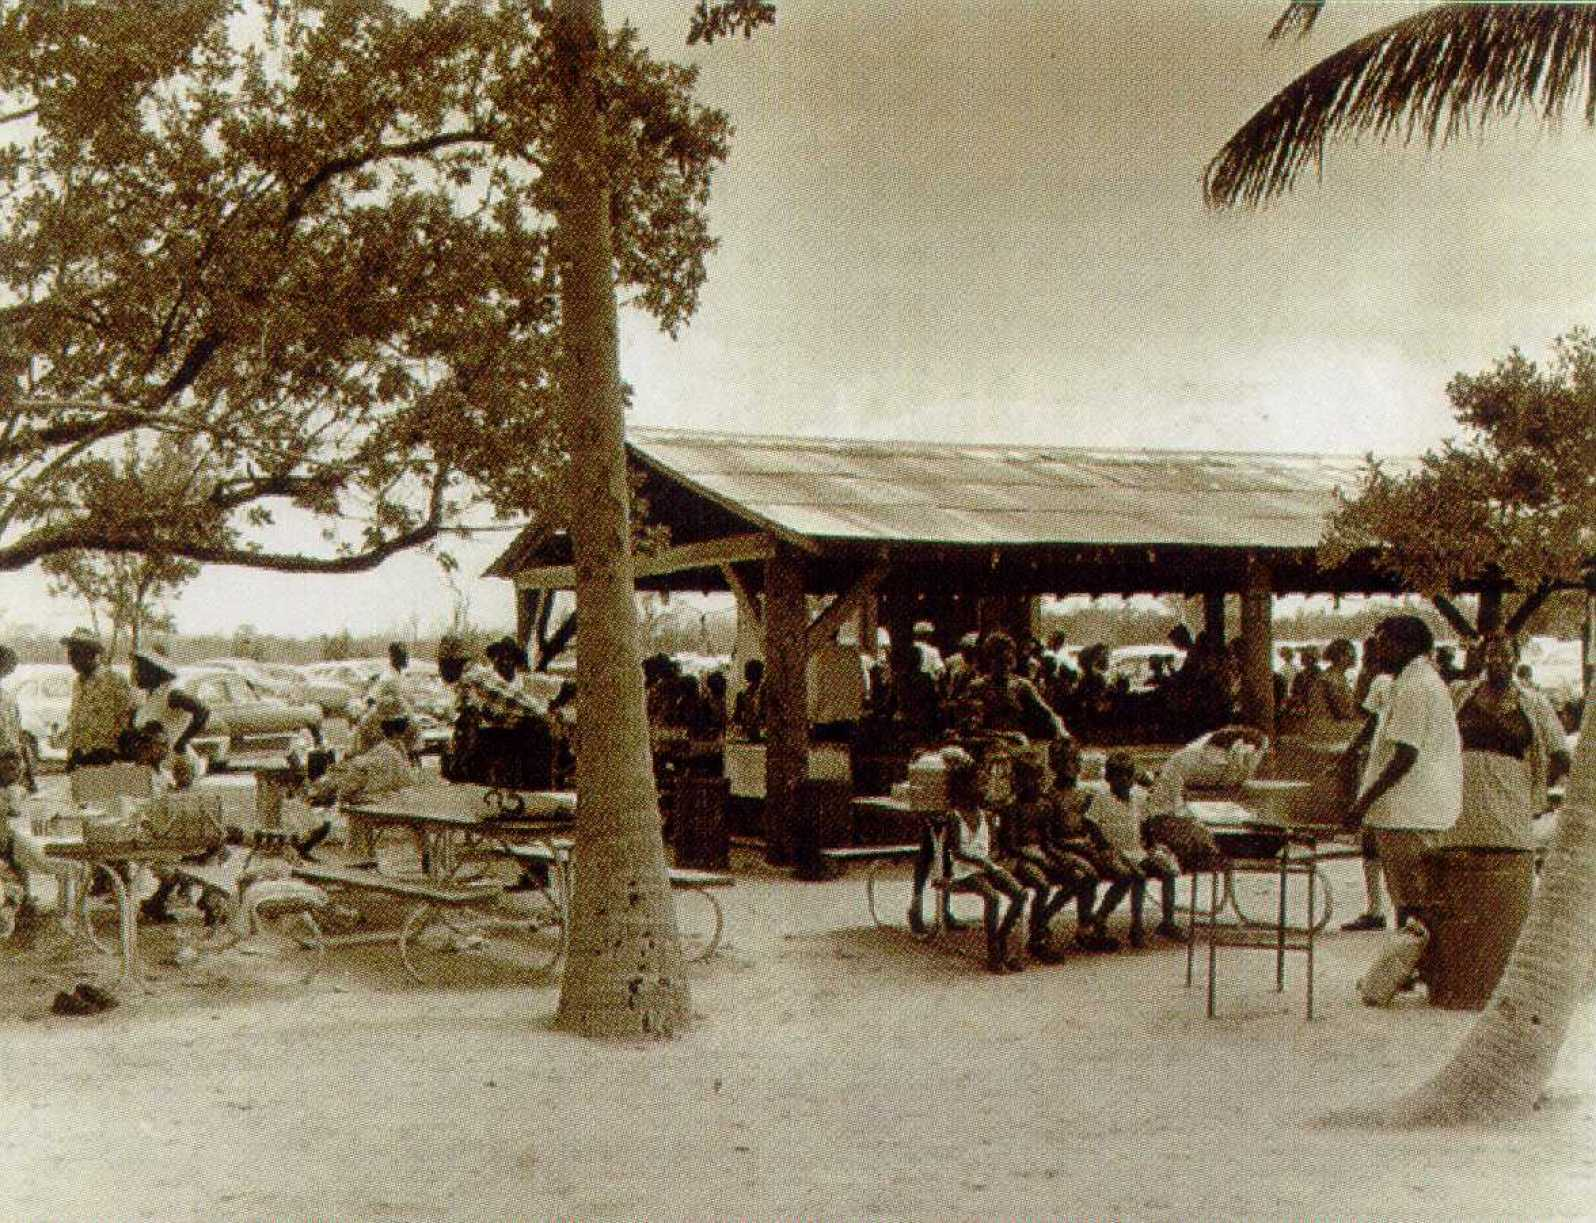 Pavilions at the beach (Courtesy of the Historic Virginia Key Beach Trust)